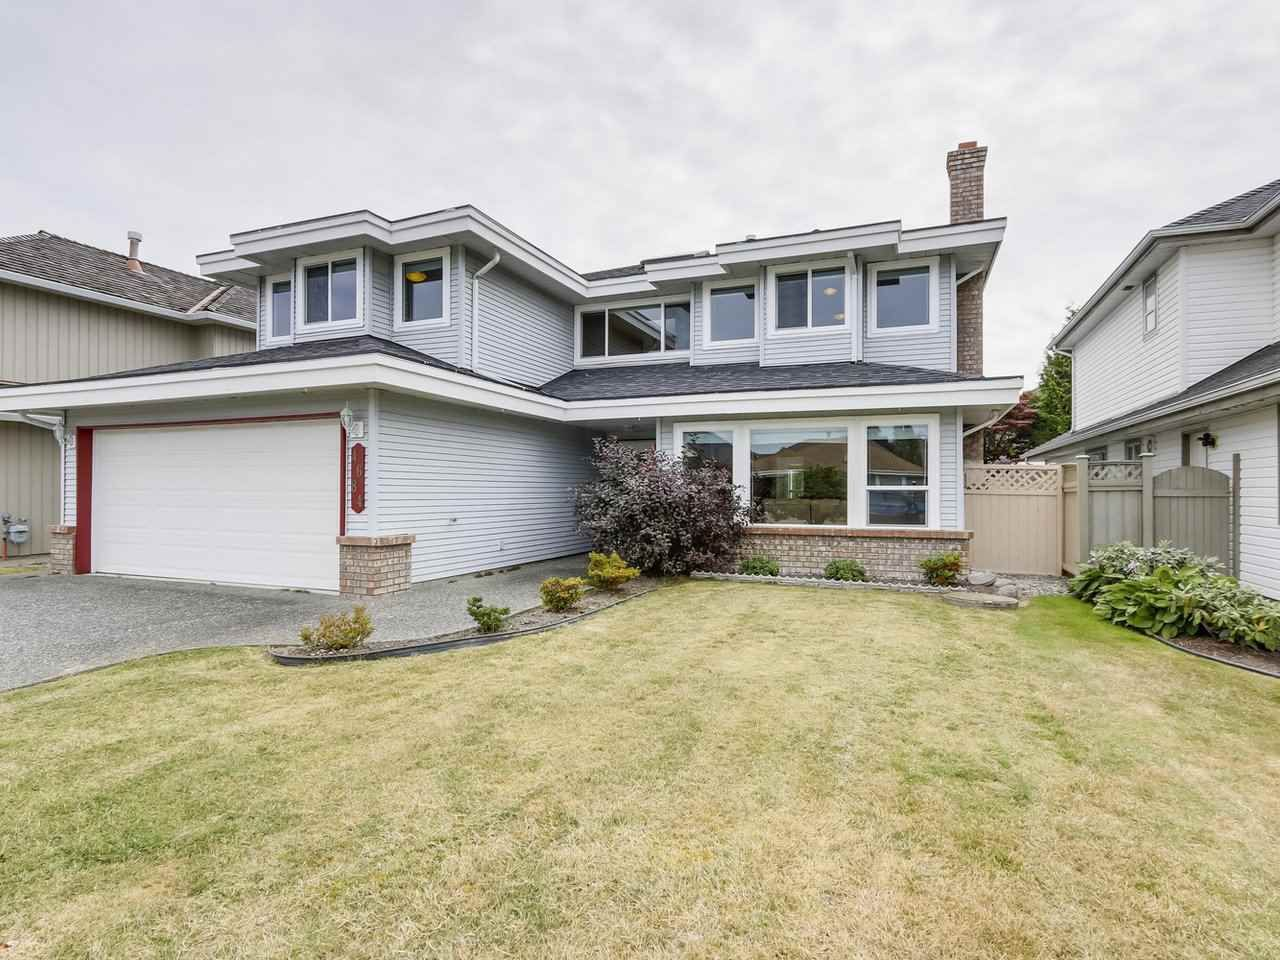 Main Photo: 4684 HOLLY PARK WYND in Delta: Holly House for sale (Ladner)  : MLS®# R2311438